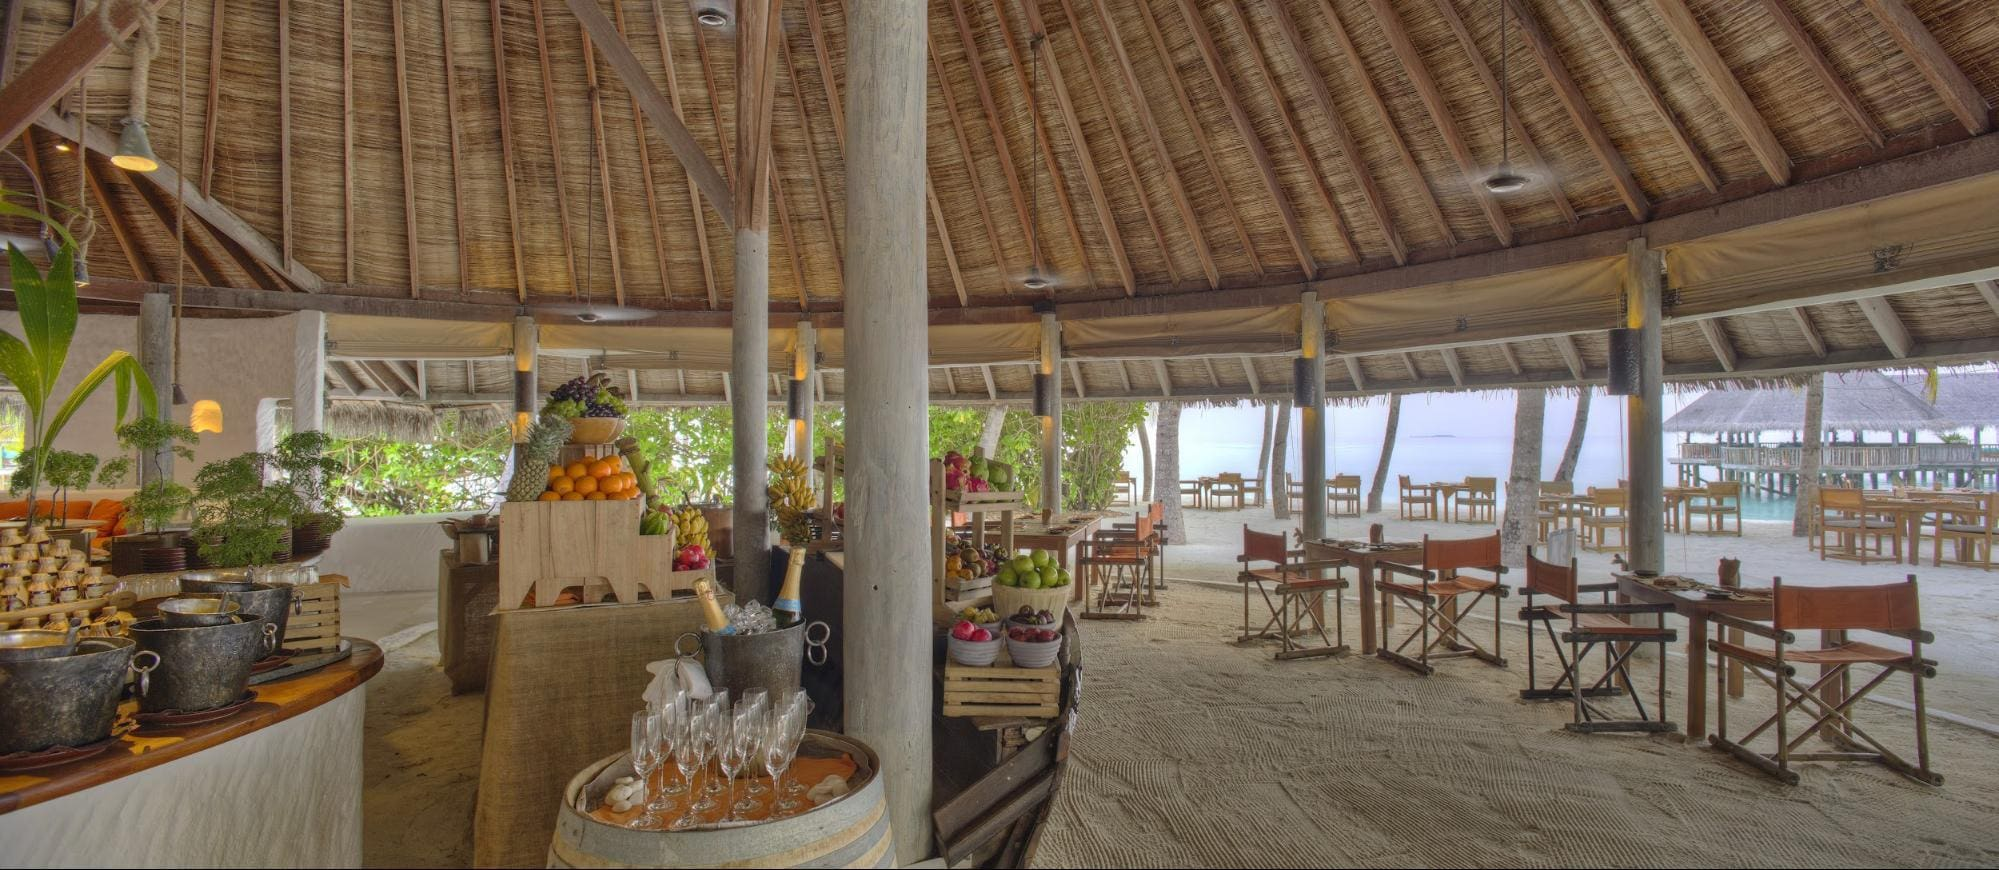 Breakfast at Gili Lankanfushi - Courtesy of Gili Lankanfushi